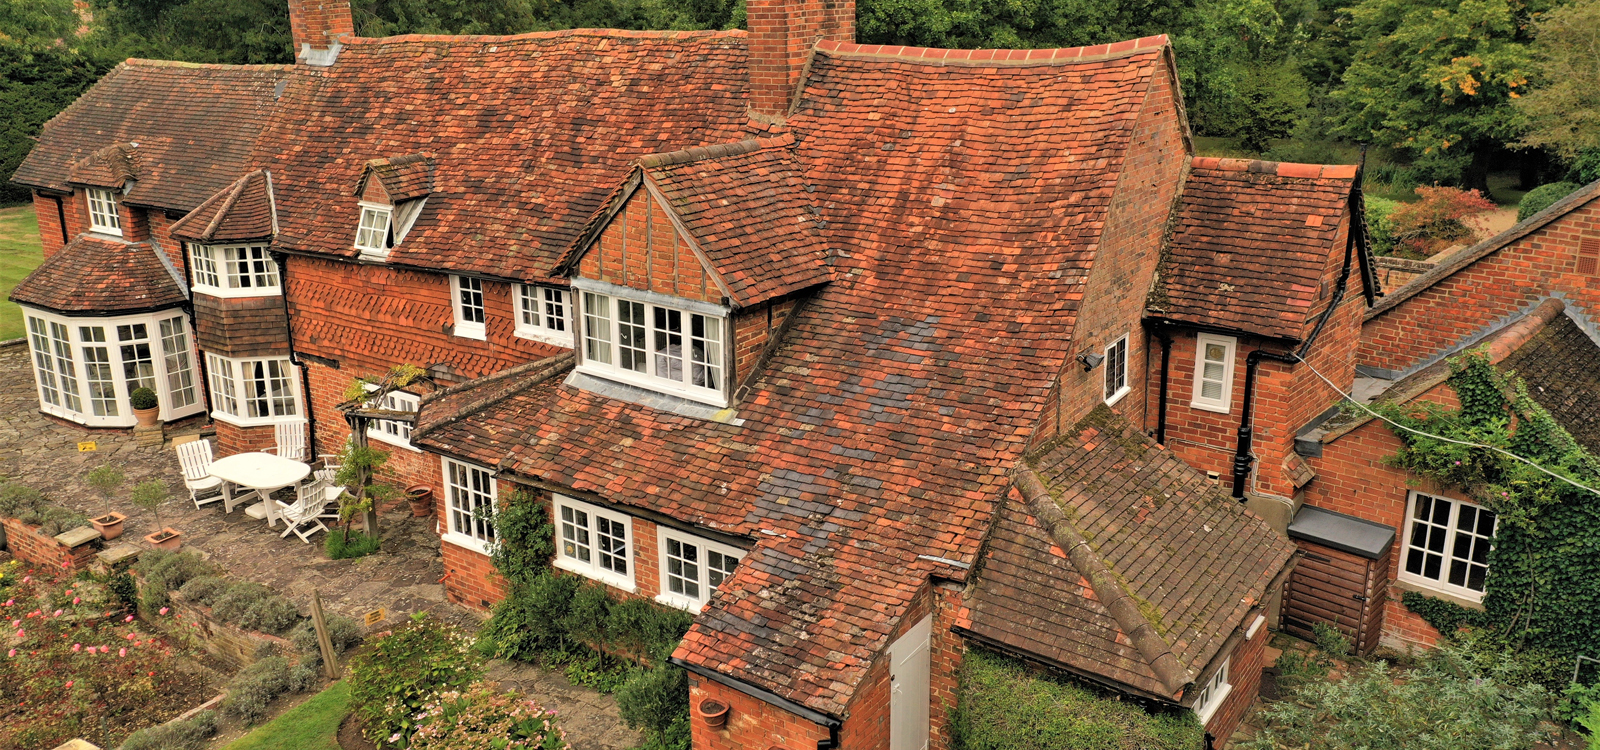 Farmhouse in Berkshire survey